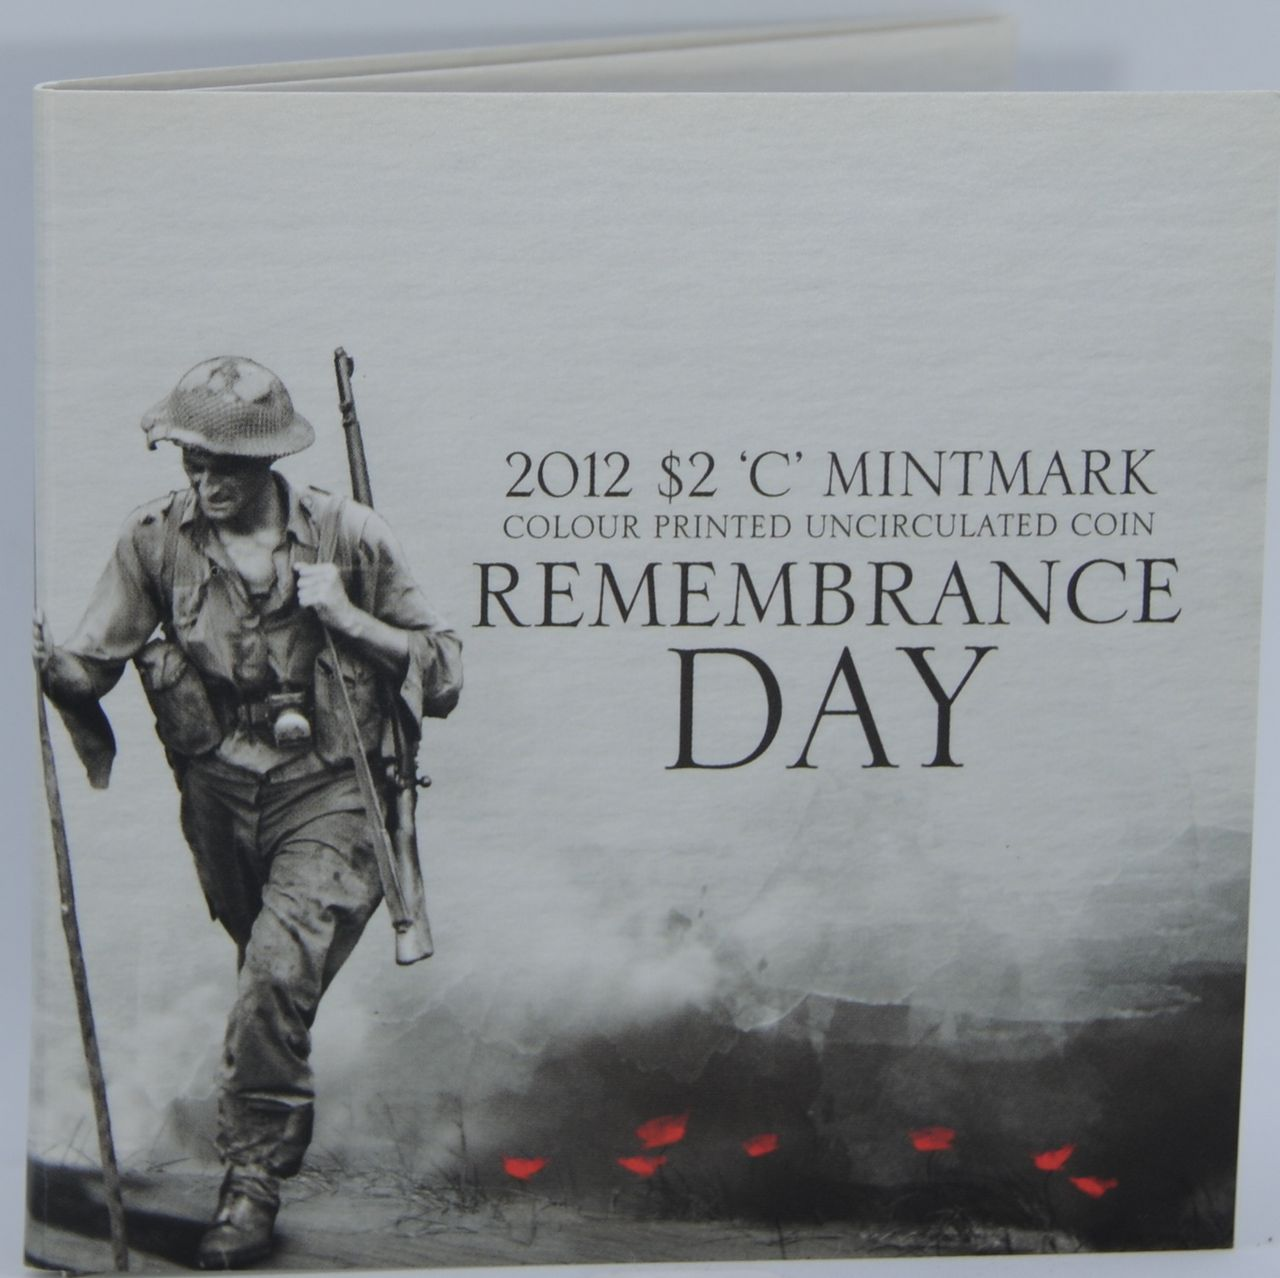 2012 2 Remembrance Day Red Poppy Carded Unc C Mintmark The Purple Penny